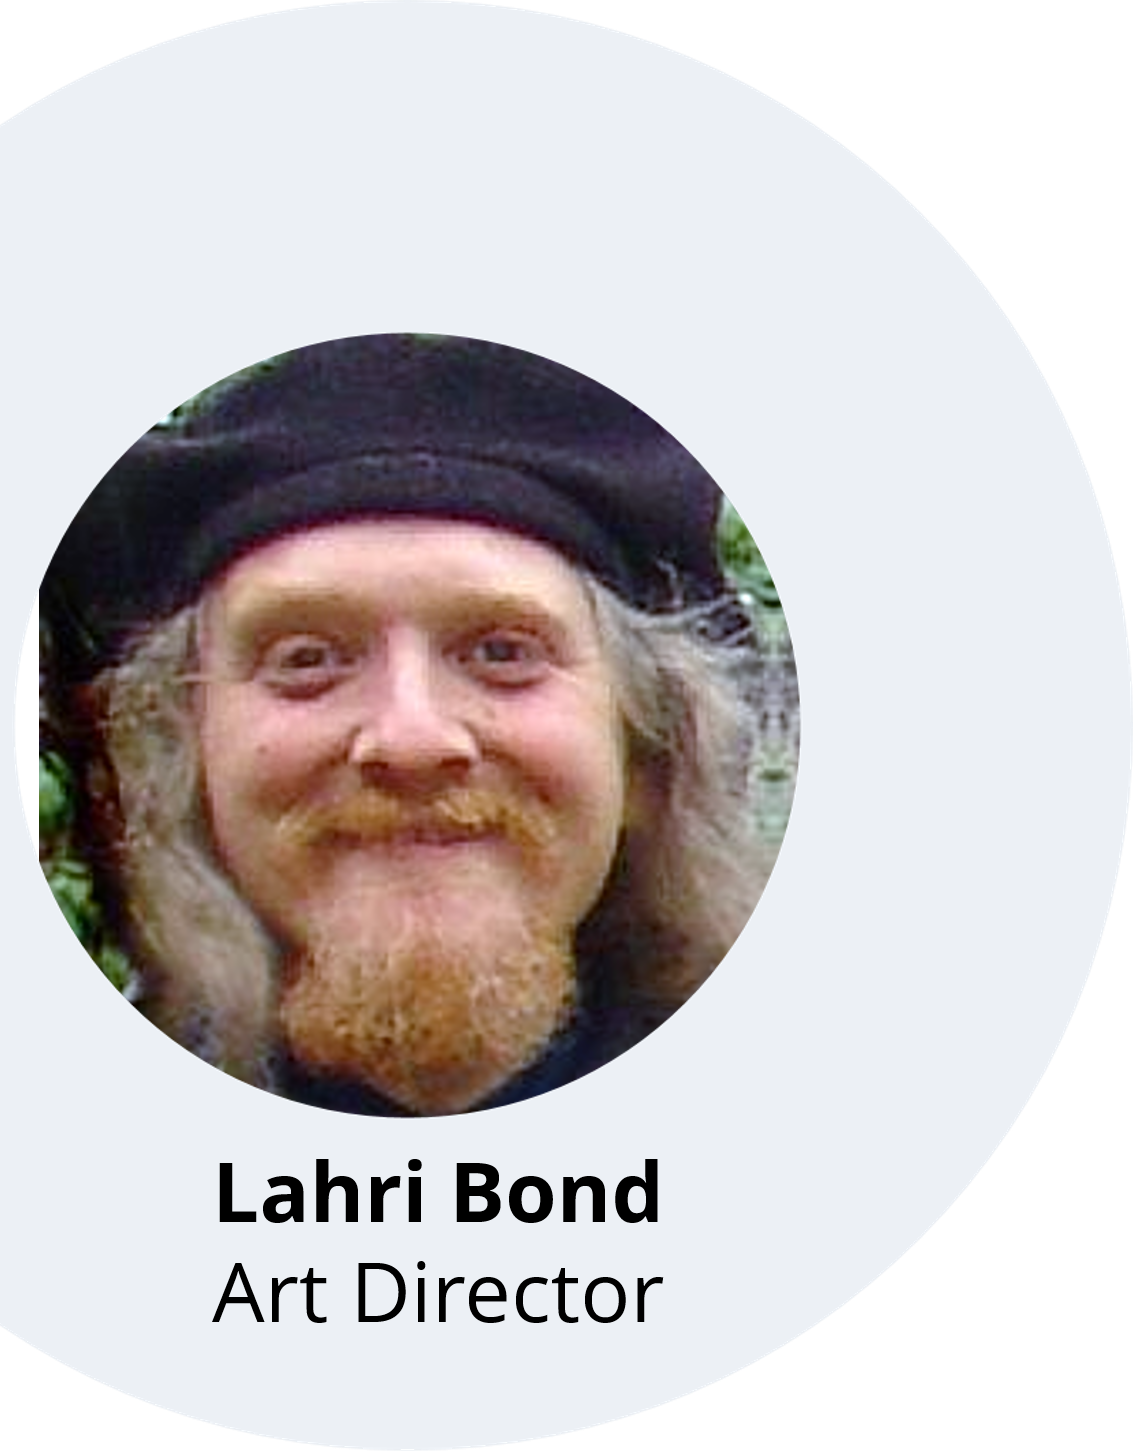 Lahri Bond (Art Director)